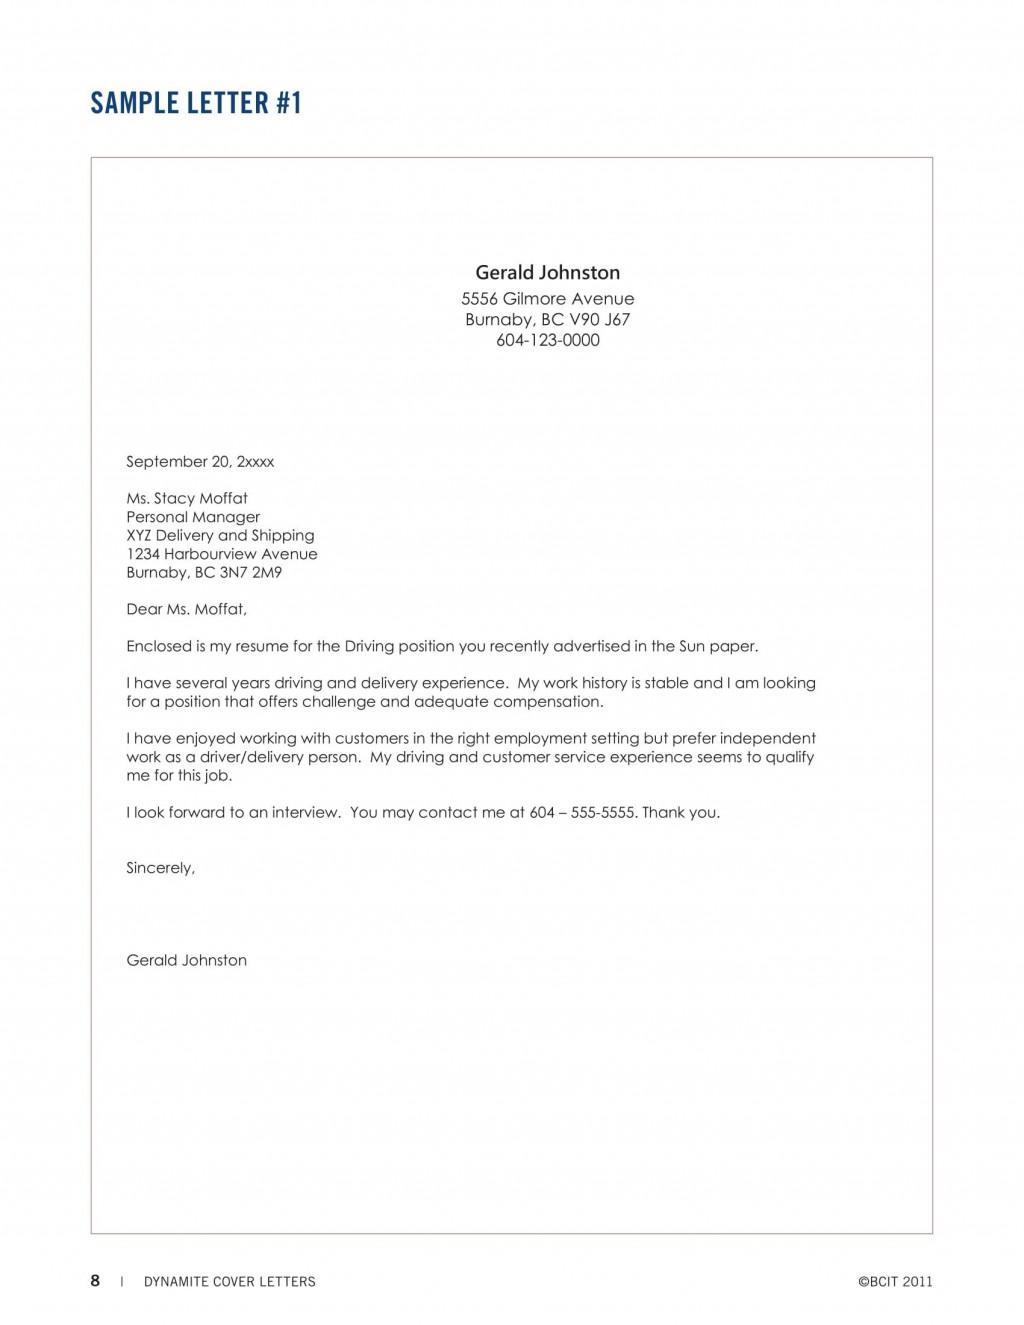 009 Unforgettable Download Resume Cover Letter Sample Free High Definition Large